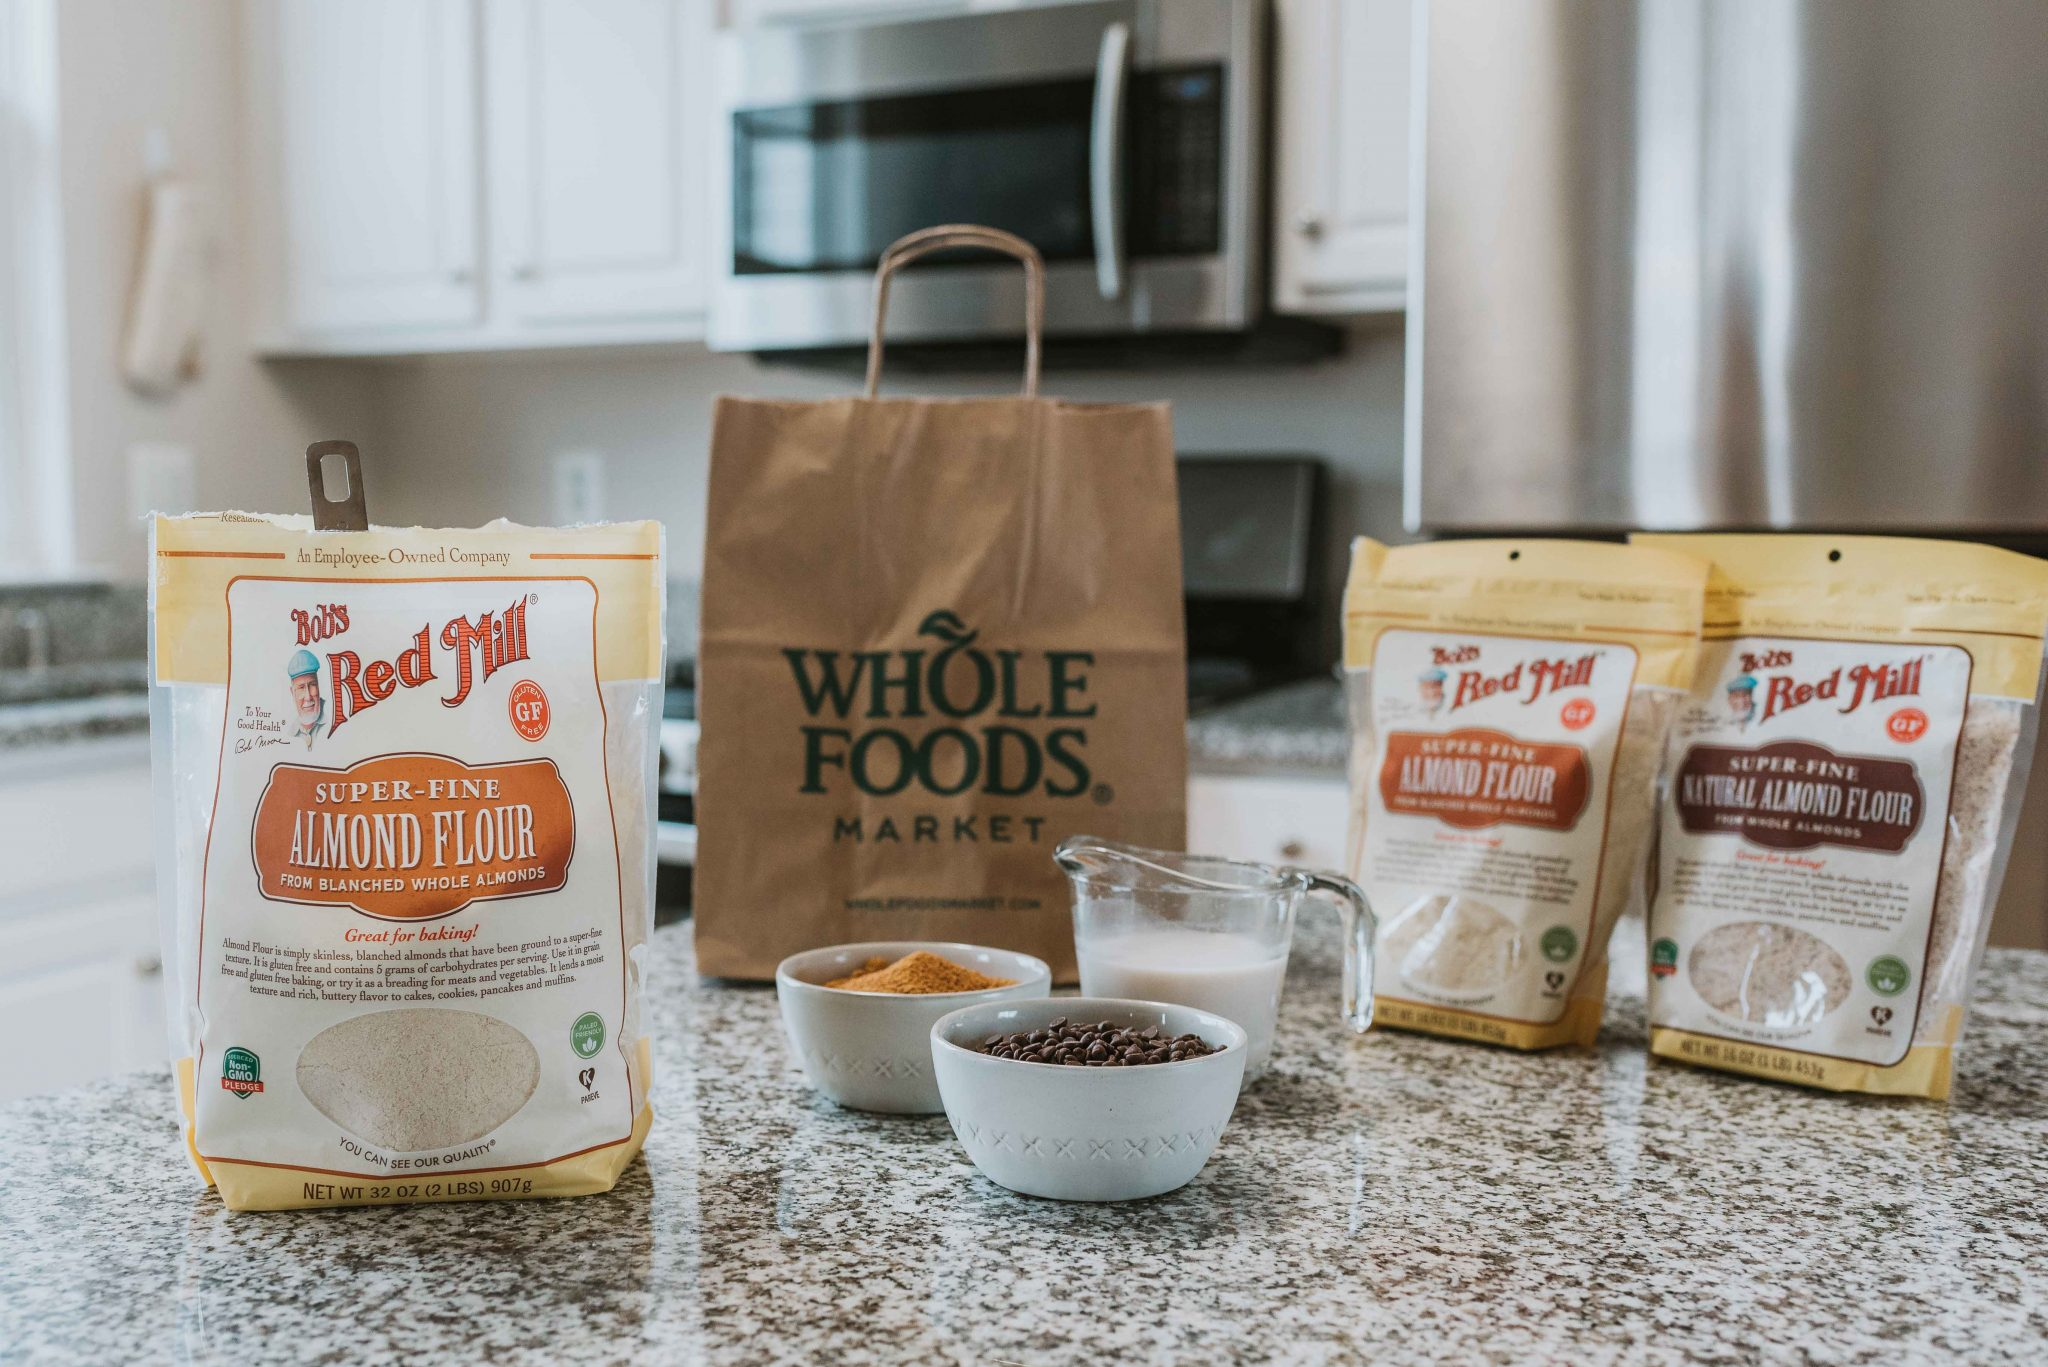 Almond Flour: My Favorite Grain-Free Flour by Flora & Vino